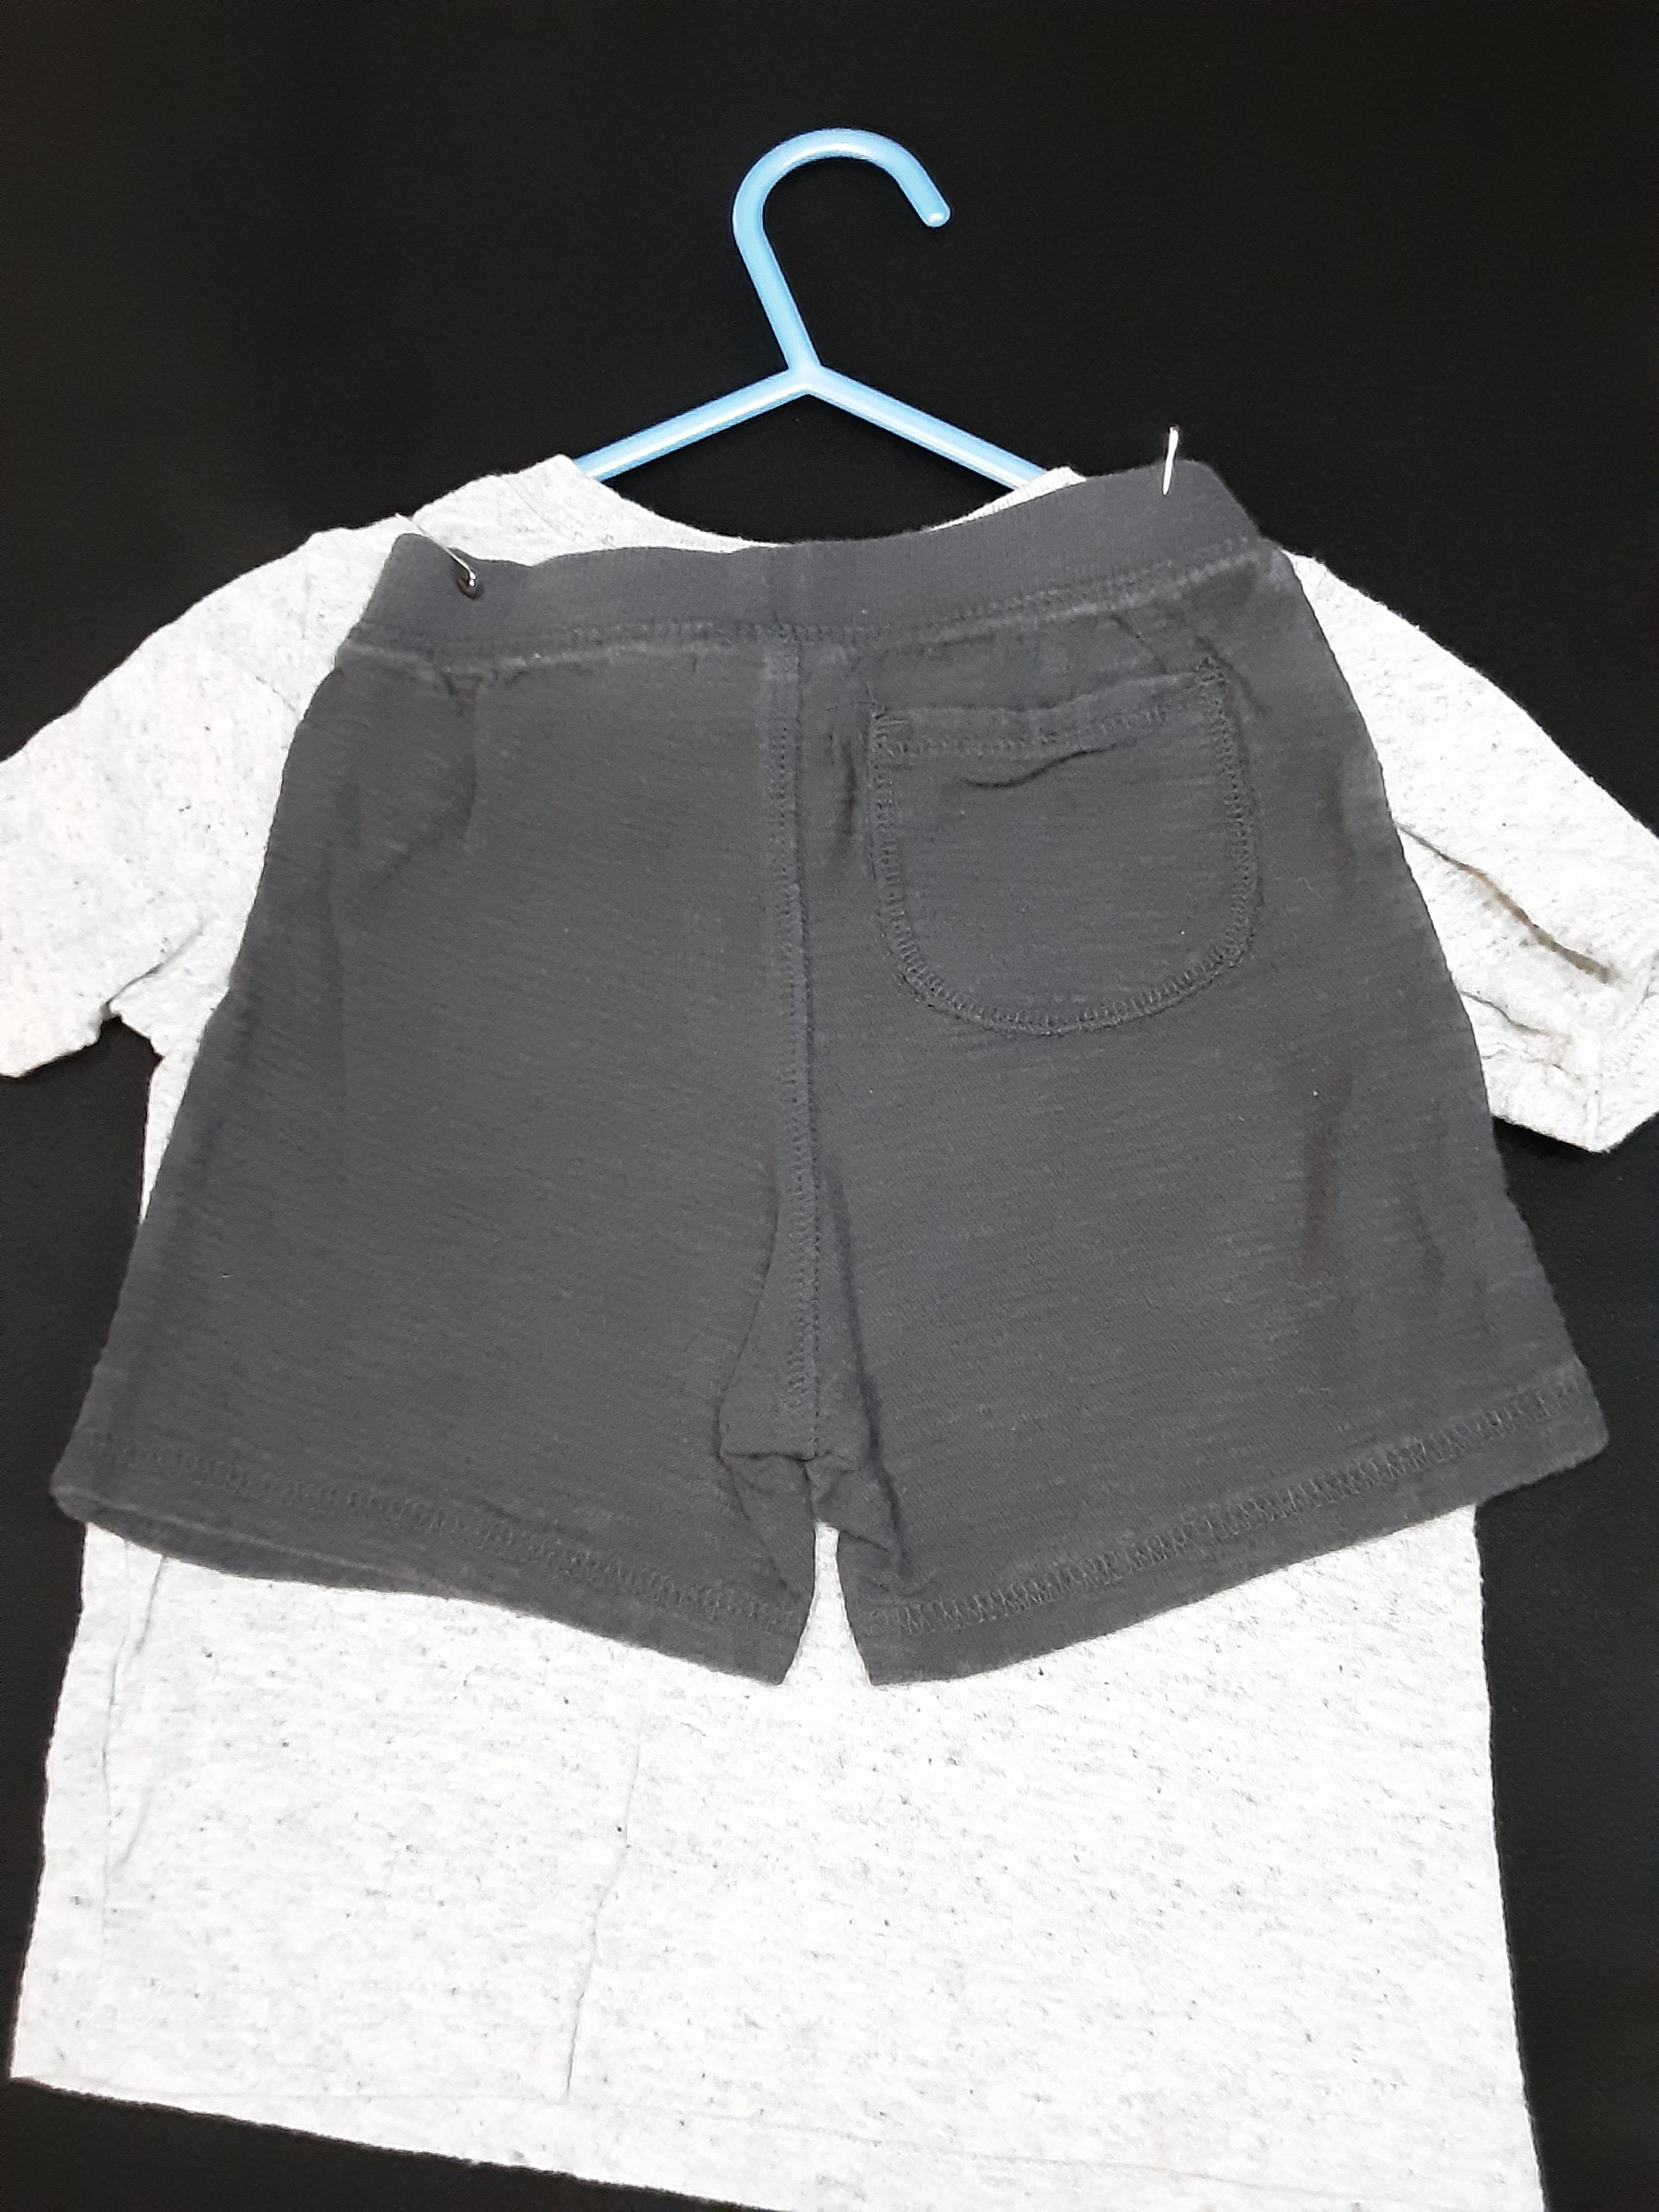 JUMPING  BEAN grey octopus shirt with dark grey shorts  Size 18m boys